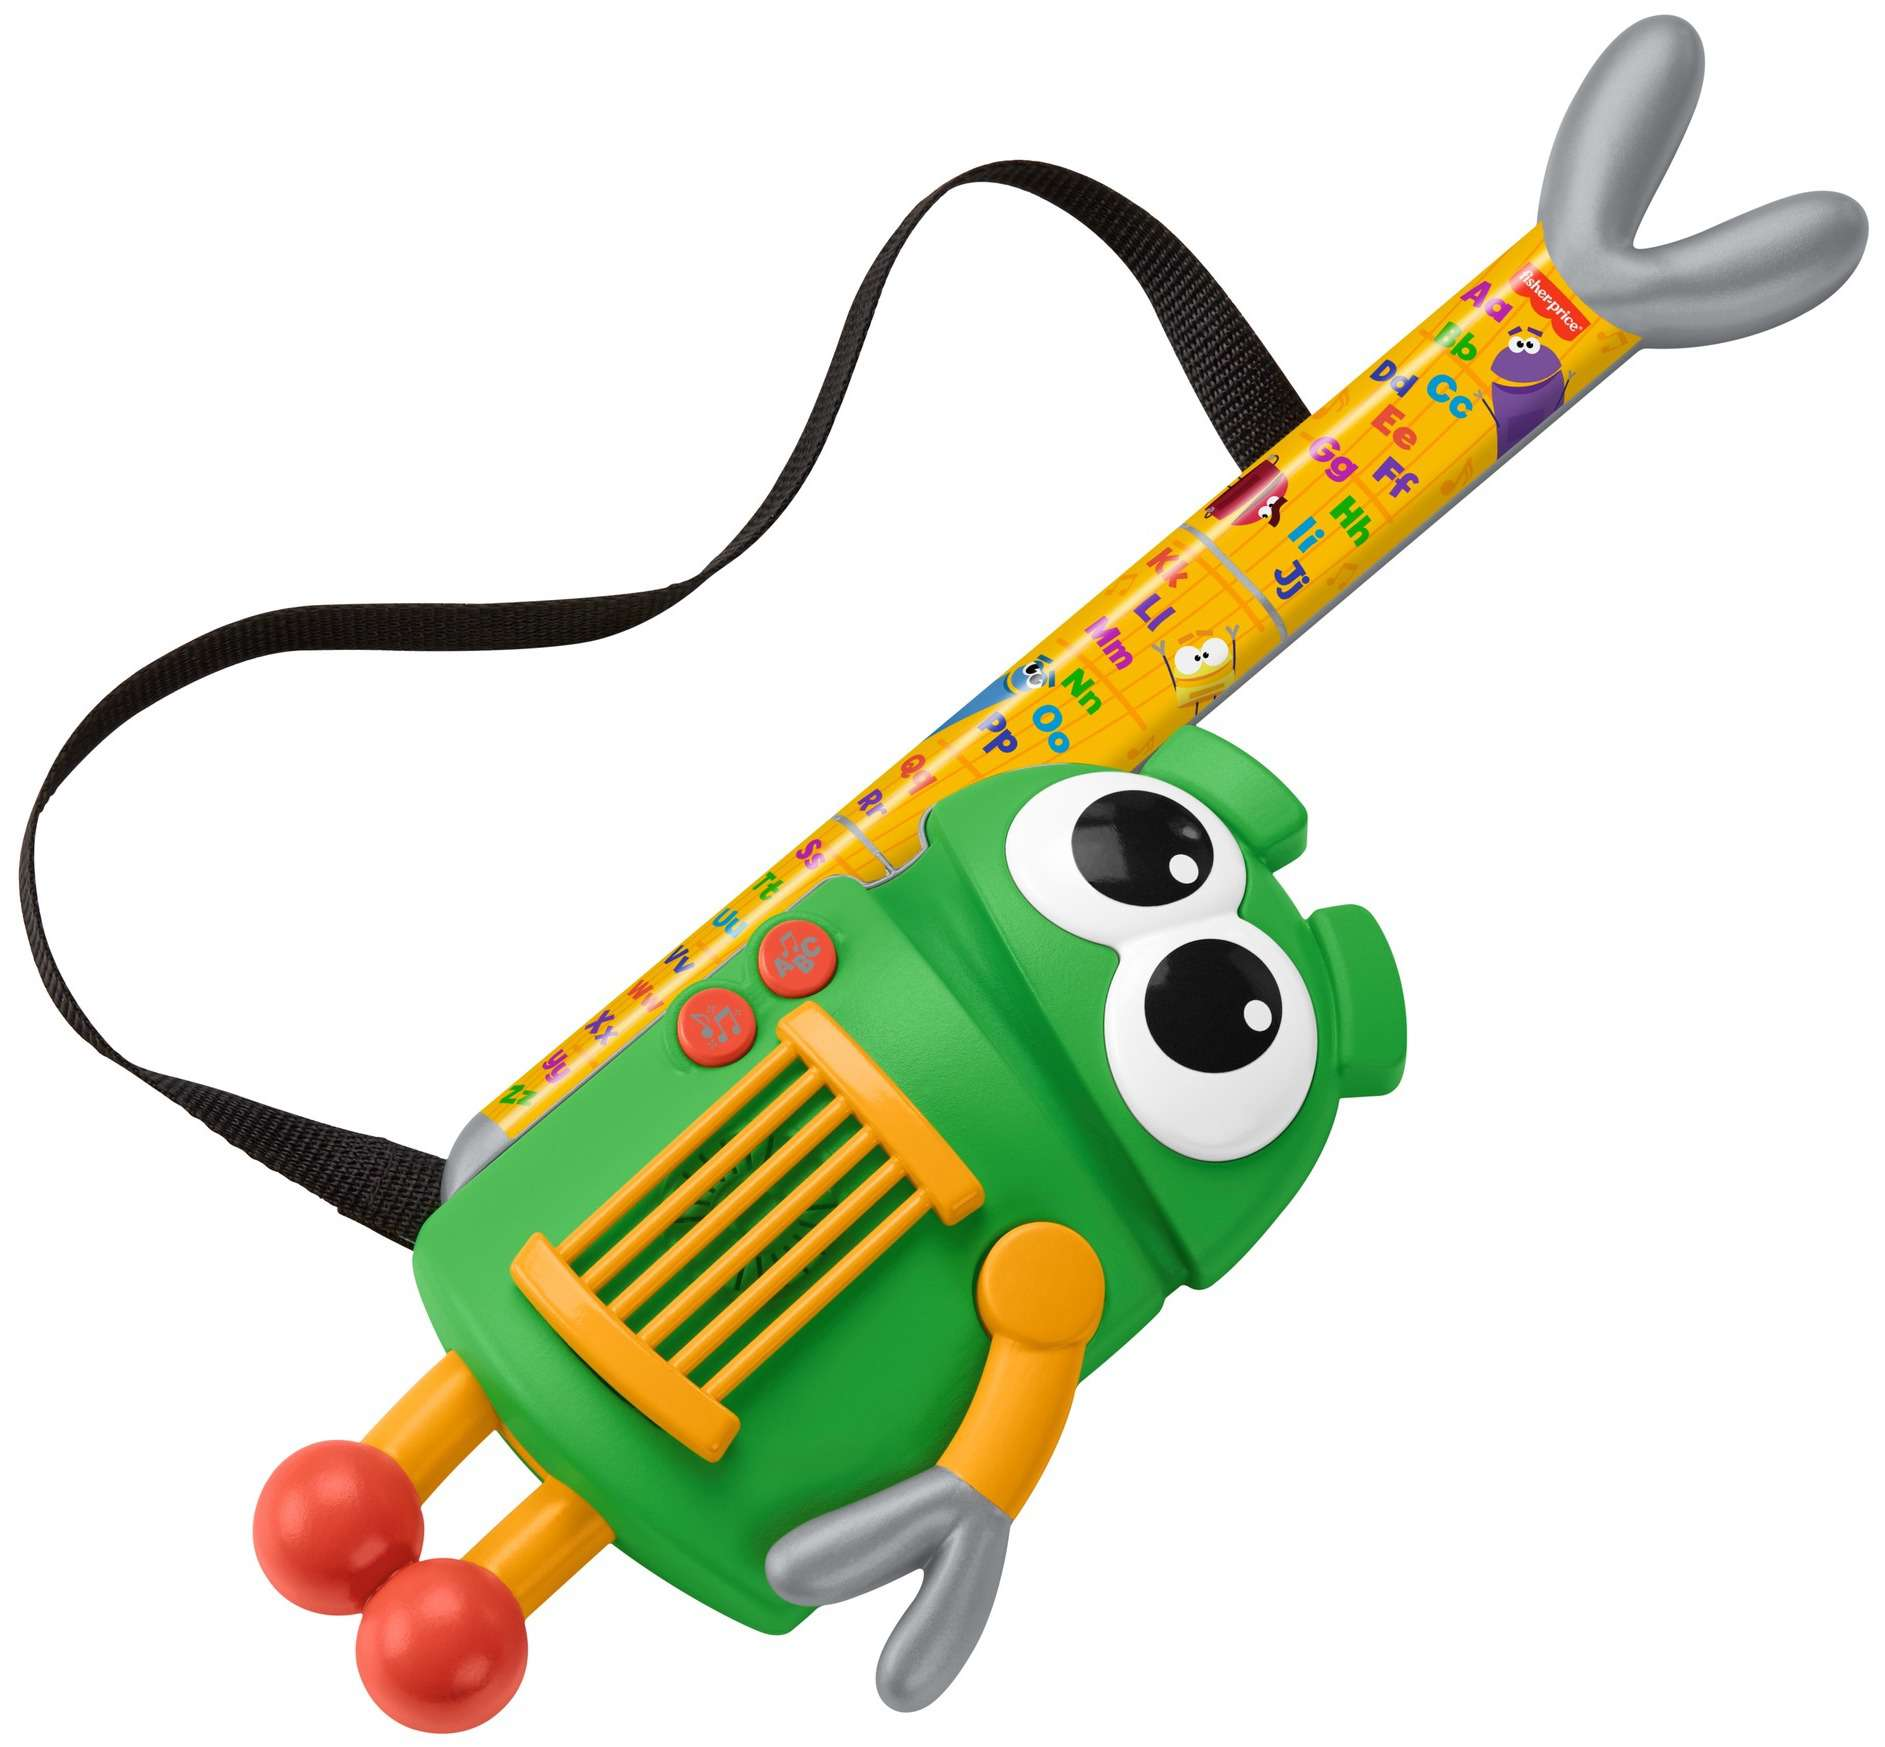 Fisher-Price Storybots A to Z Rock Star Guitar